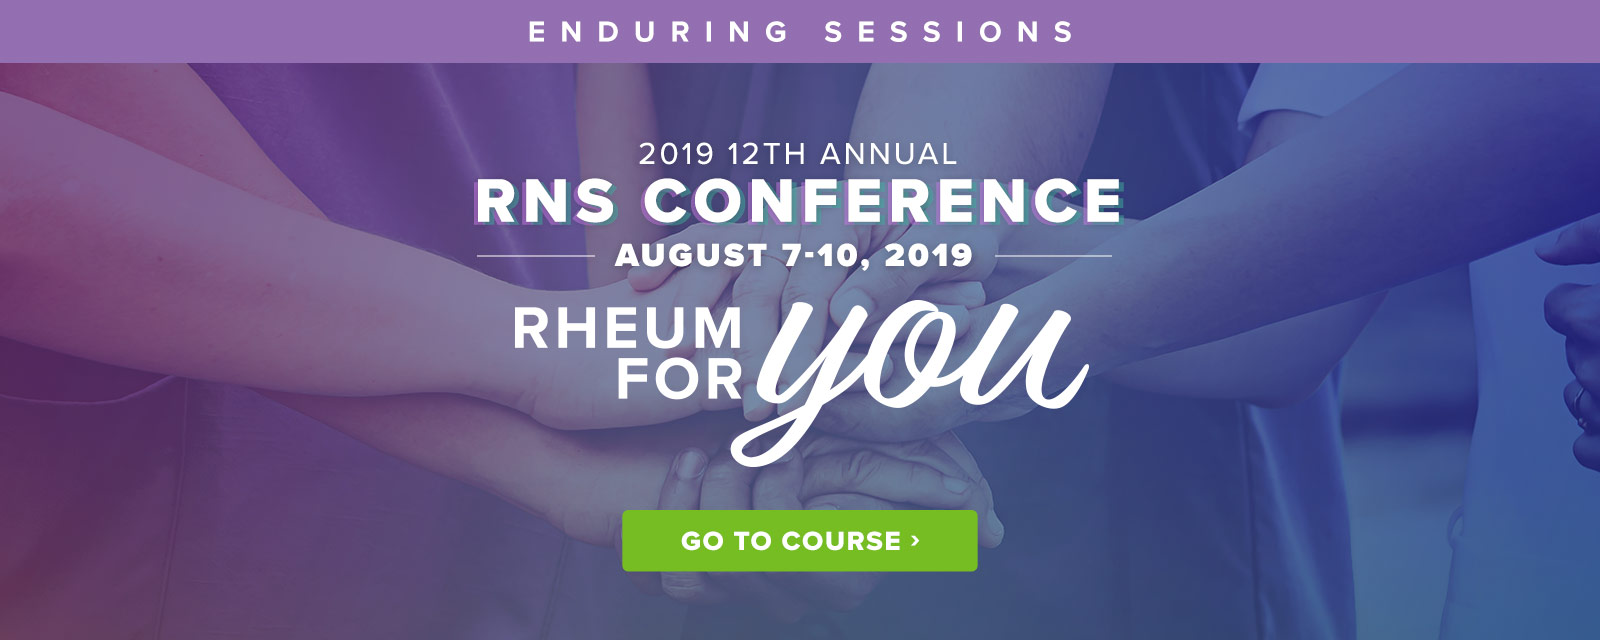 2019 RNS Conference - Enduring Sessions